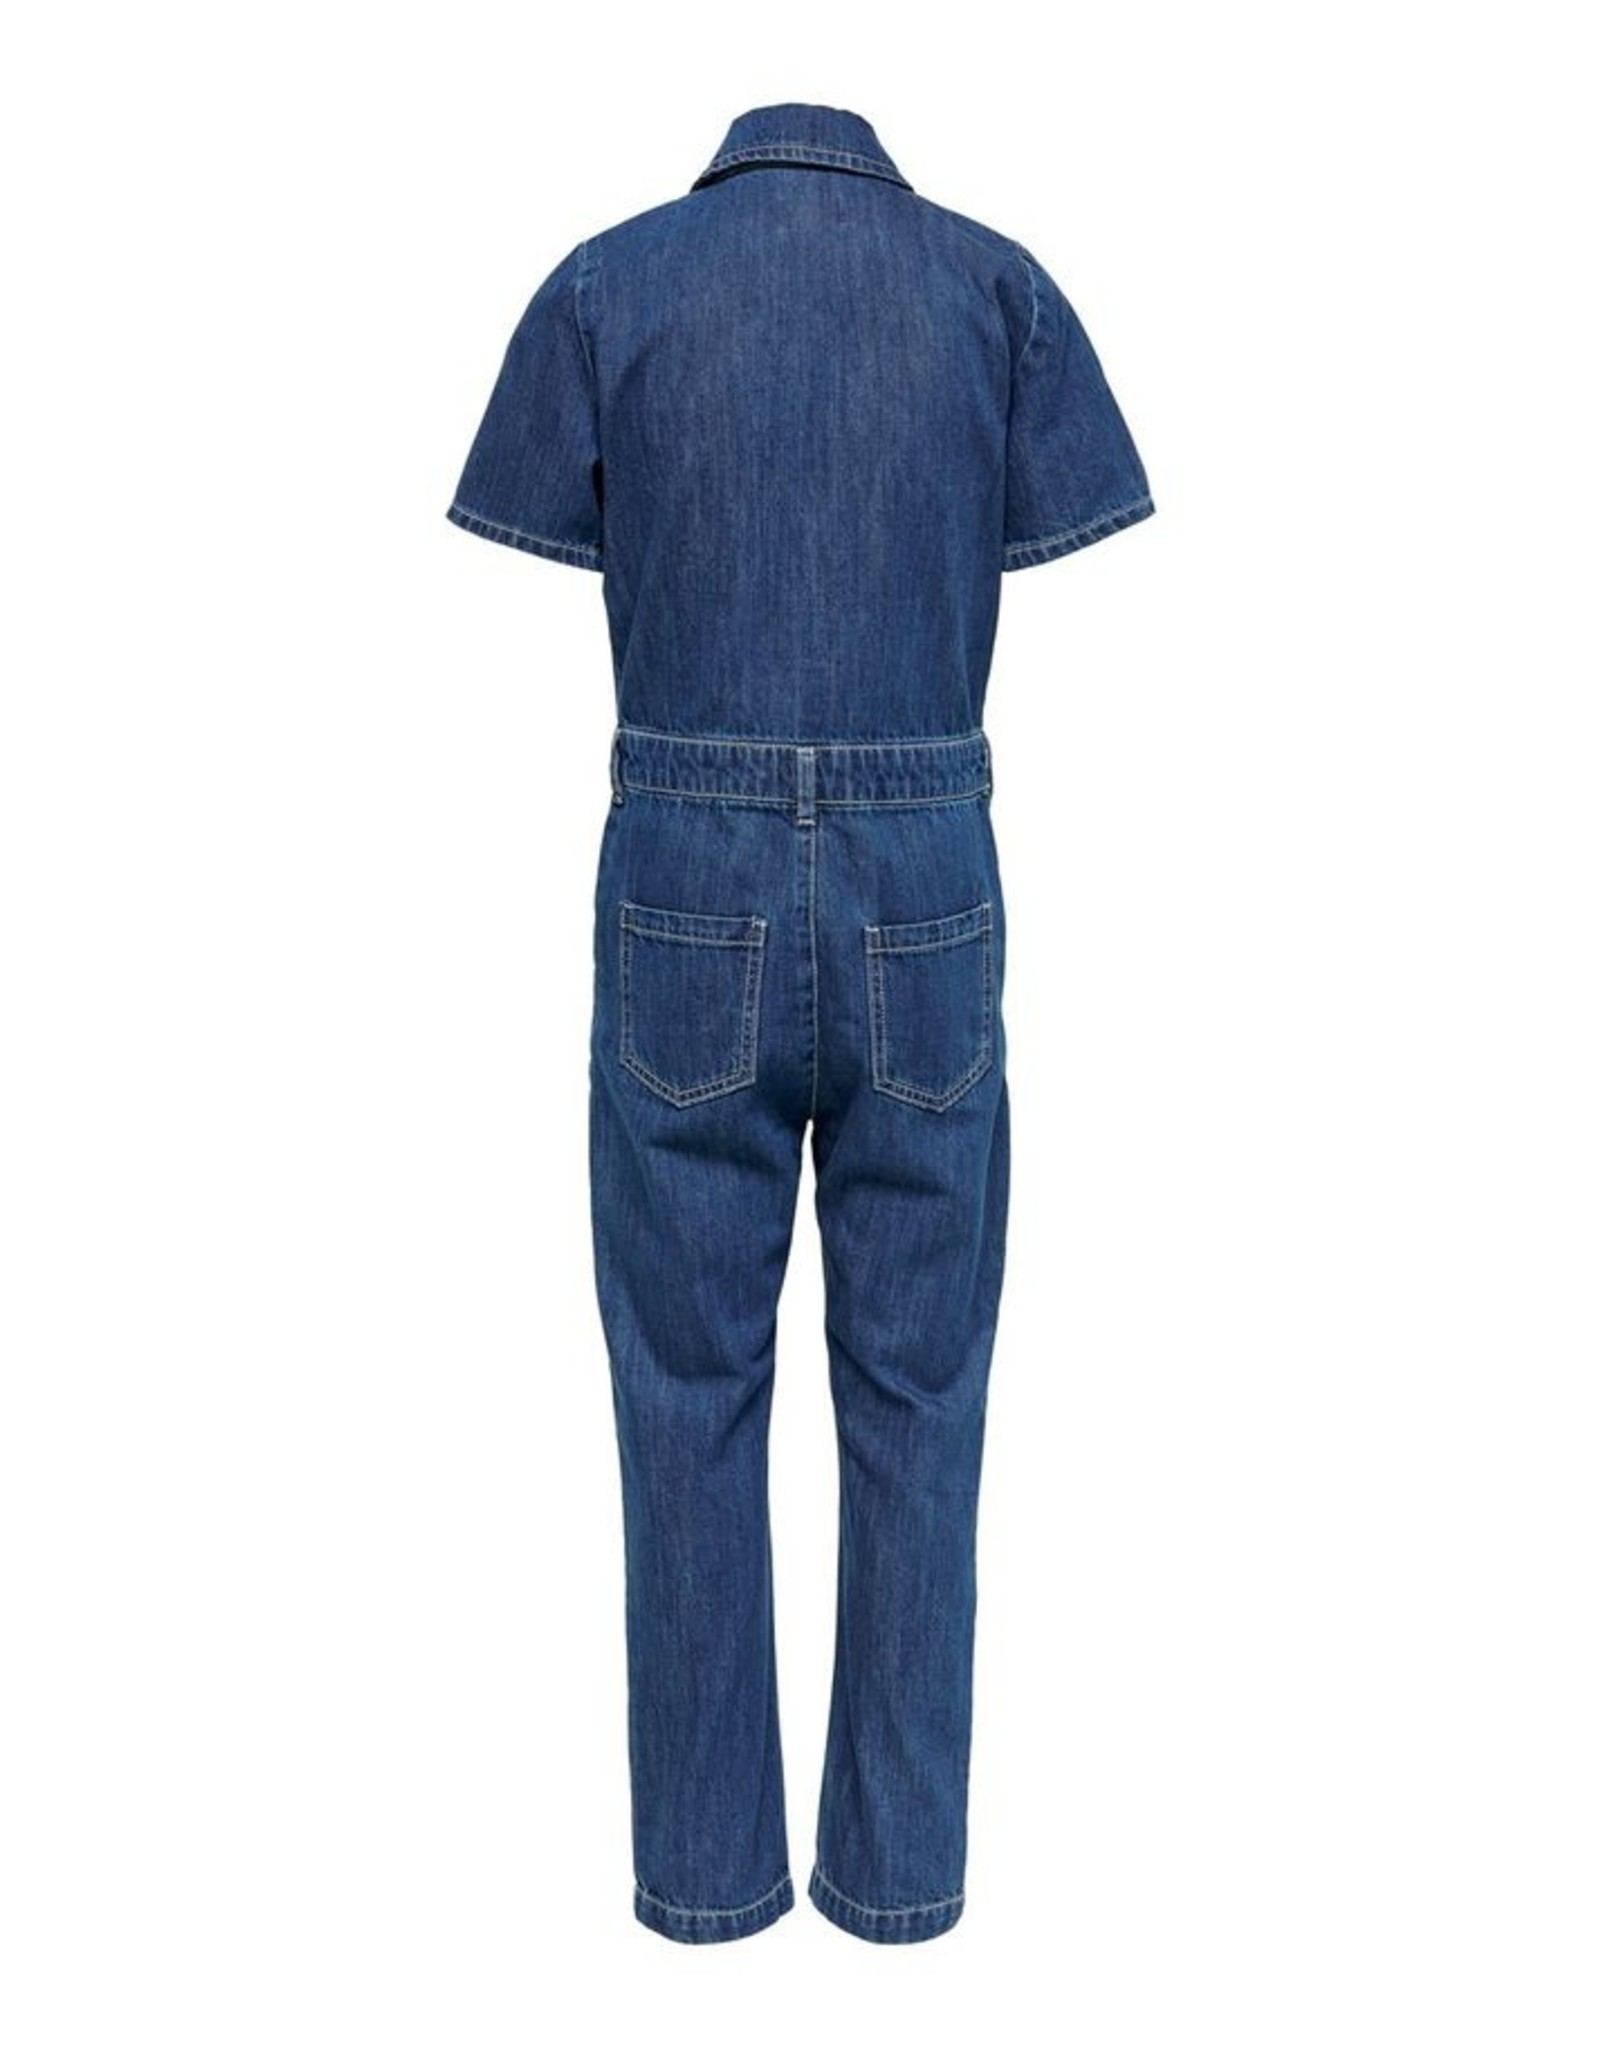 KIDS ONLY Jumpsuit in jeans van KIDS ONLY